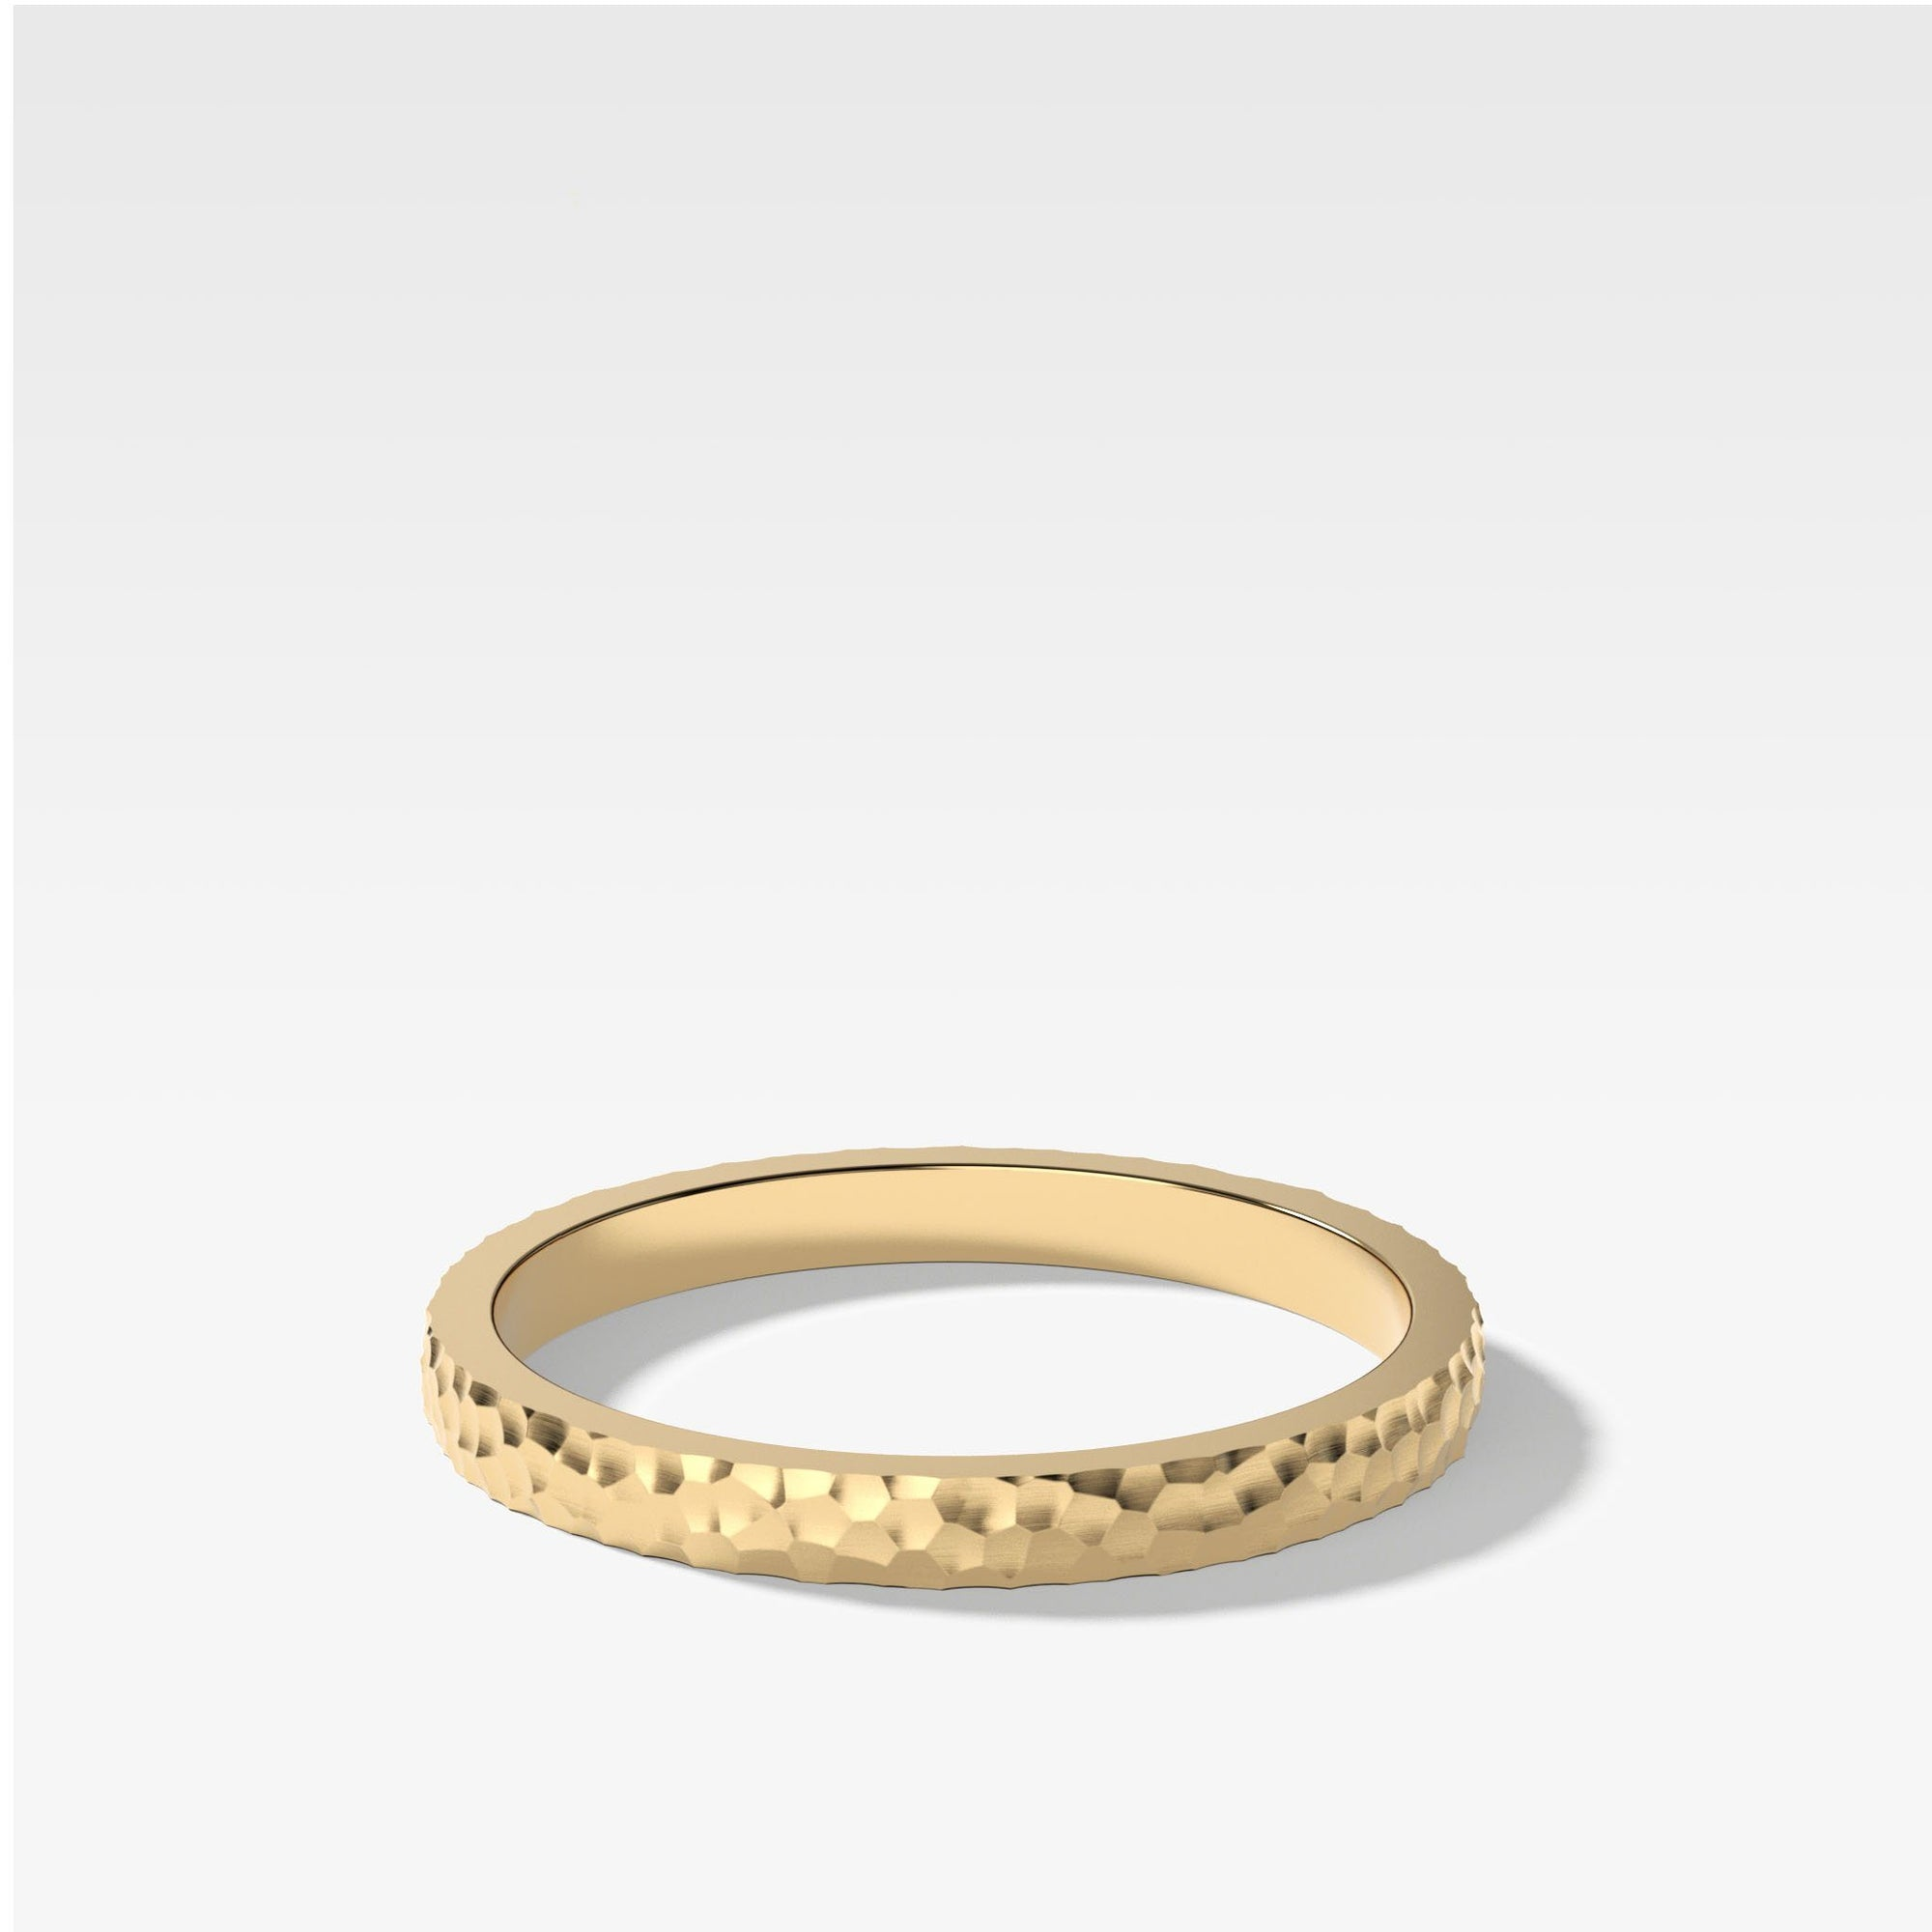 Hammered Band In Yellow Gold By Good Stone